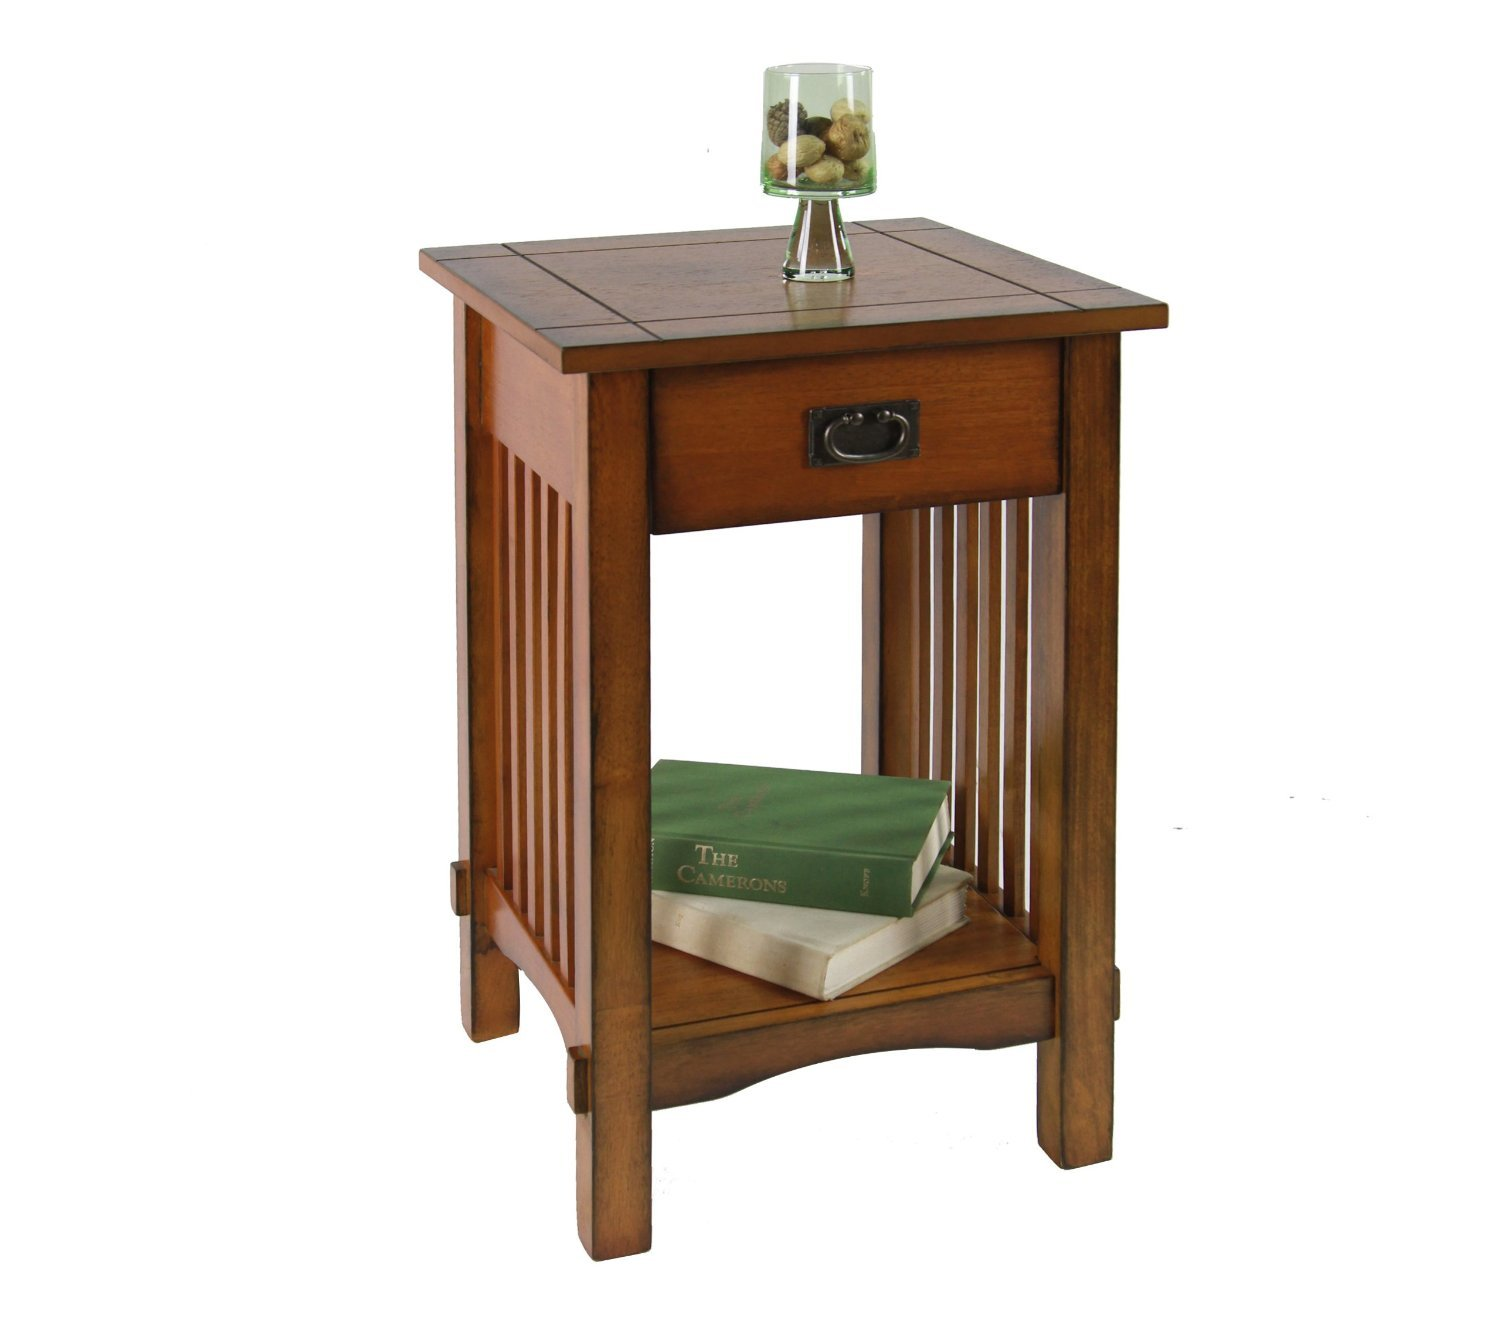 Amazon.com: Legacy Decor Mission Style Telephone Stand / End Table In  Antique Oak Finish W/ Drawer: Kitchen U0026 Dining